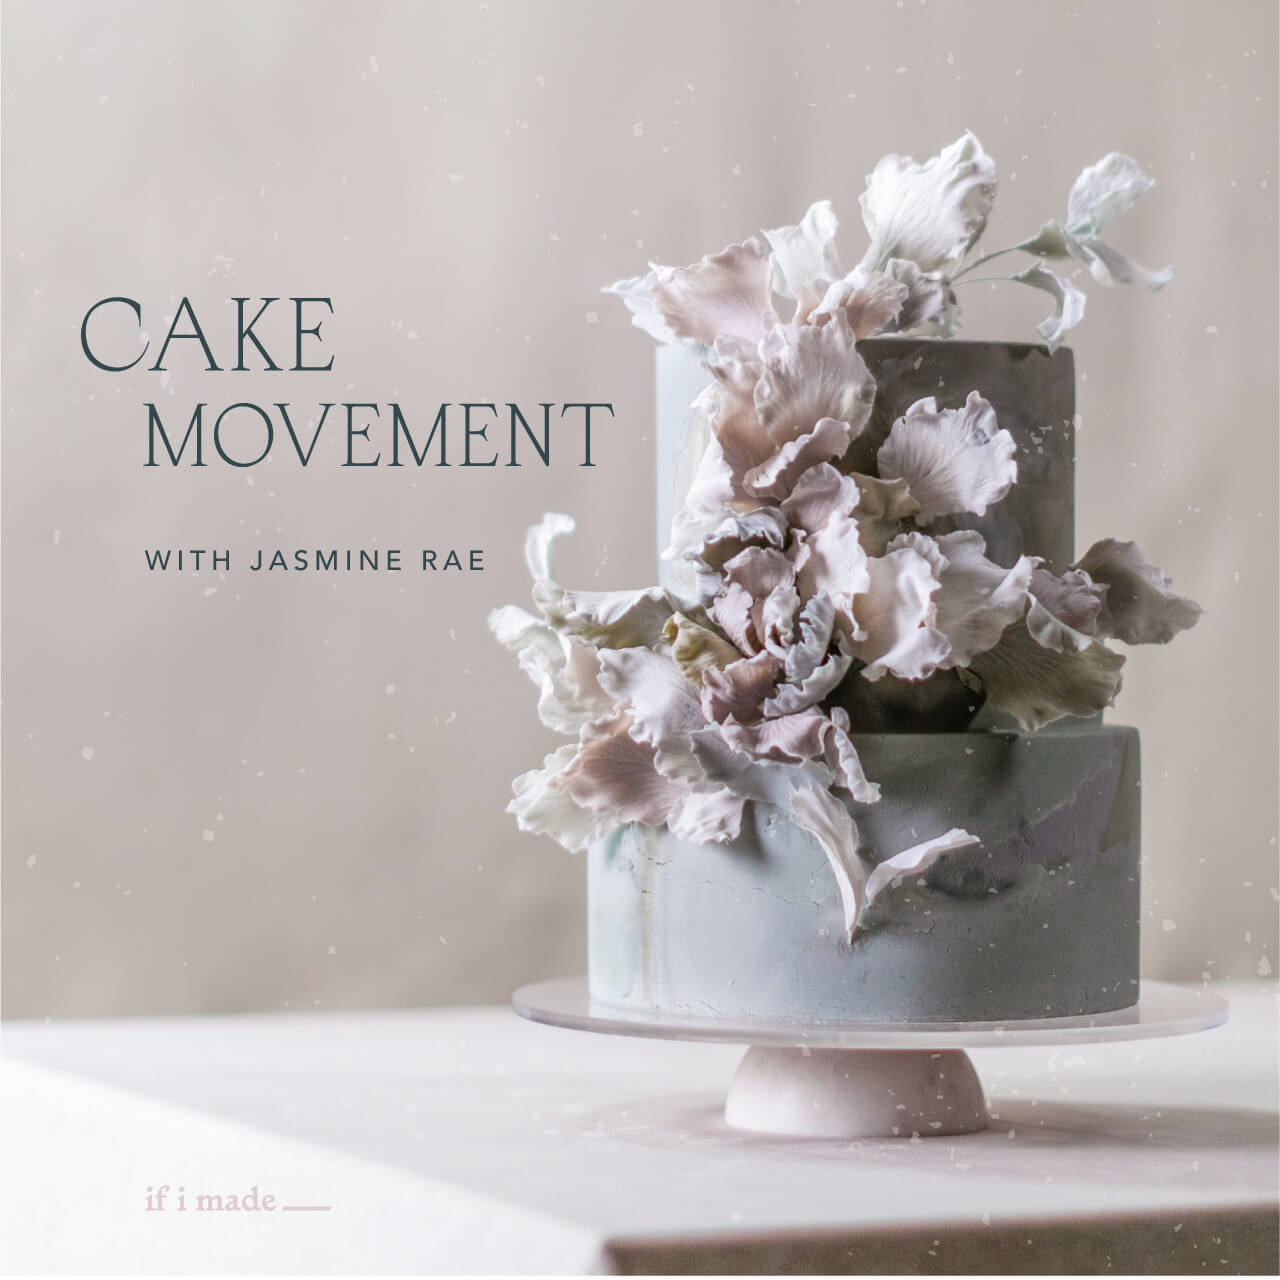 Cake Movement - Authentic Composition in Cake Design with Jasmine Rae